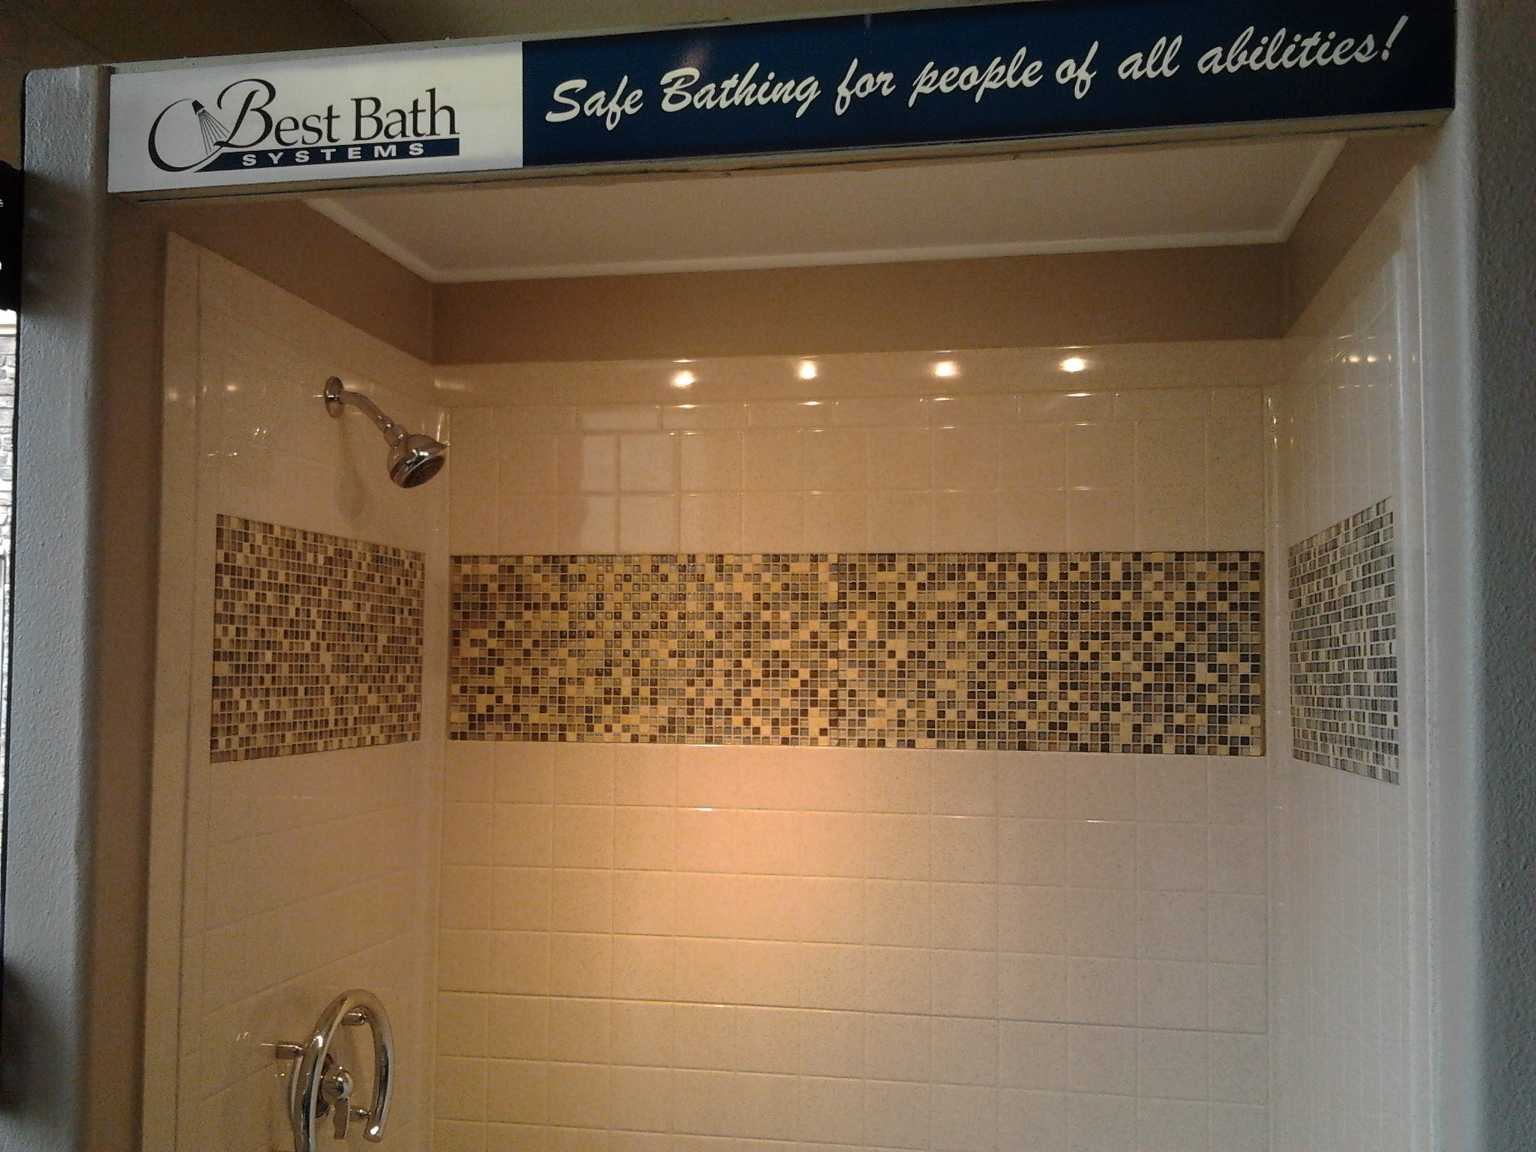 Mosaic Tile Shower Ideas: 30 Ideas Of Mosaic Tile Accents In A Bathroom